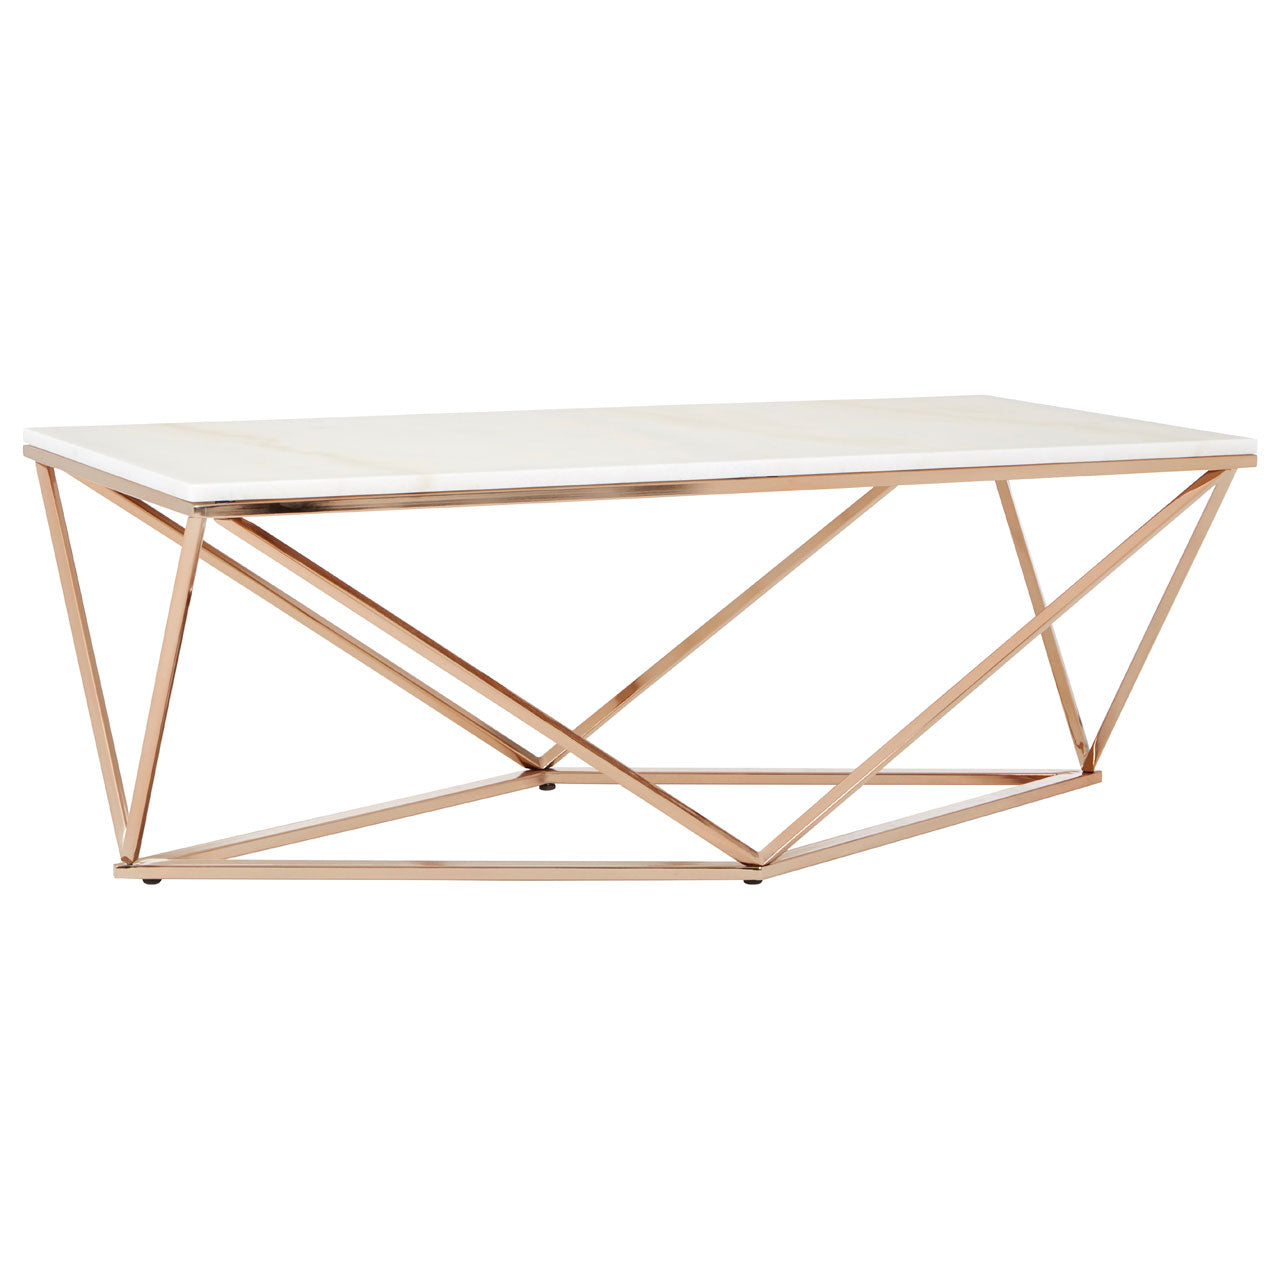 Allure Rectangular Coffee Table Champagne Gold With White Marble   Ezzo.  Allure Rectangular Coffee Table Champagne Gold With White Marble   Ezzo